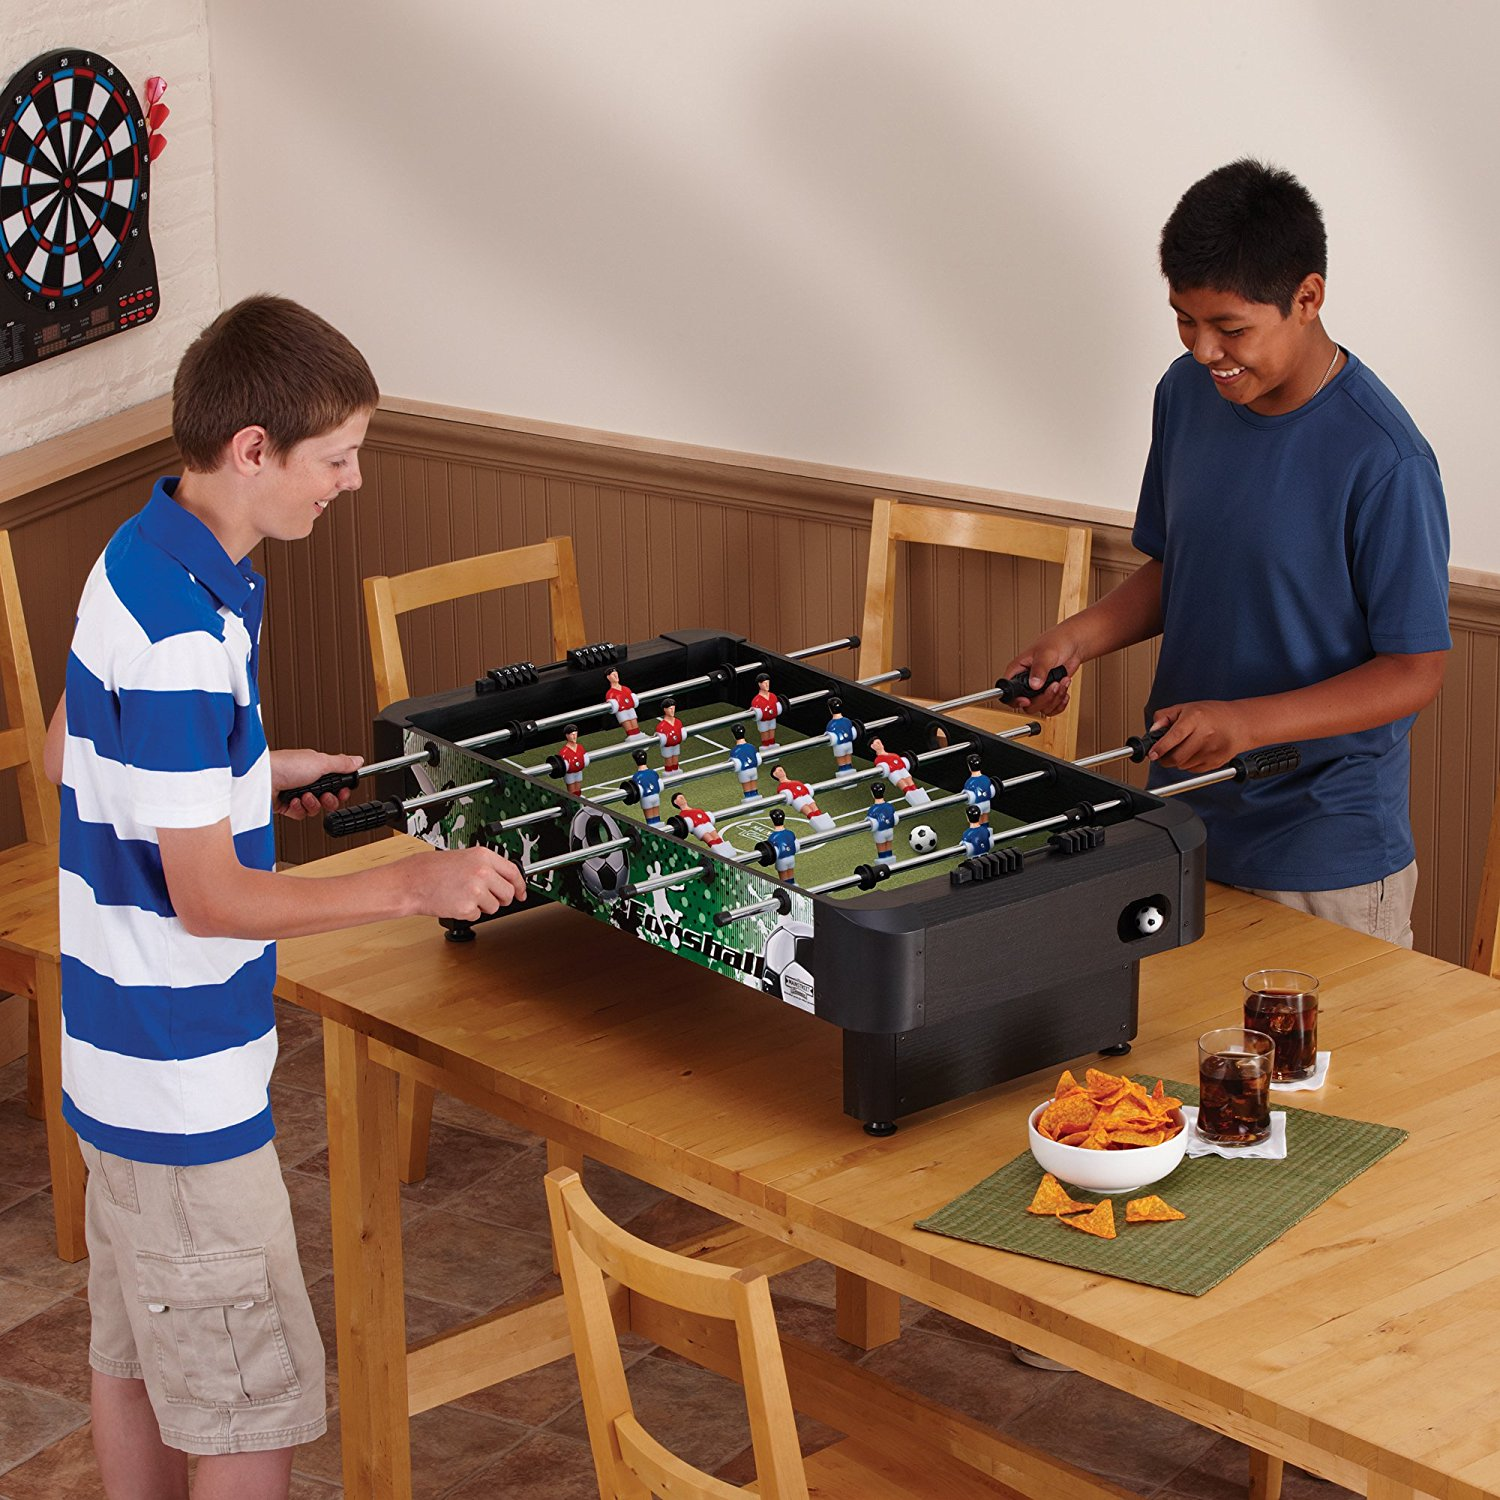 Whatu0027s The Best Mini Foosball Table